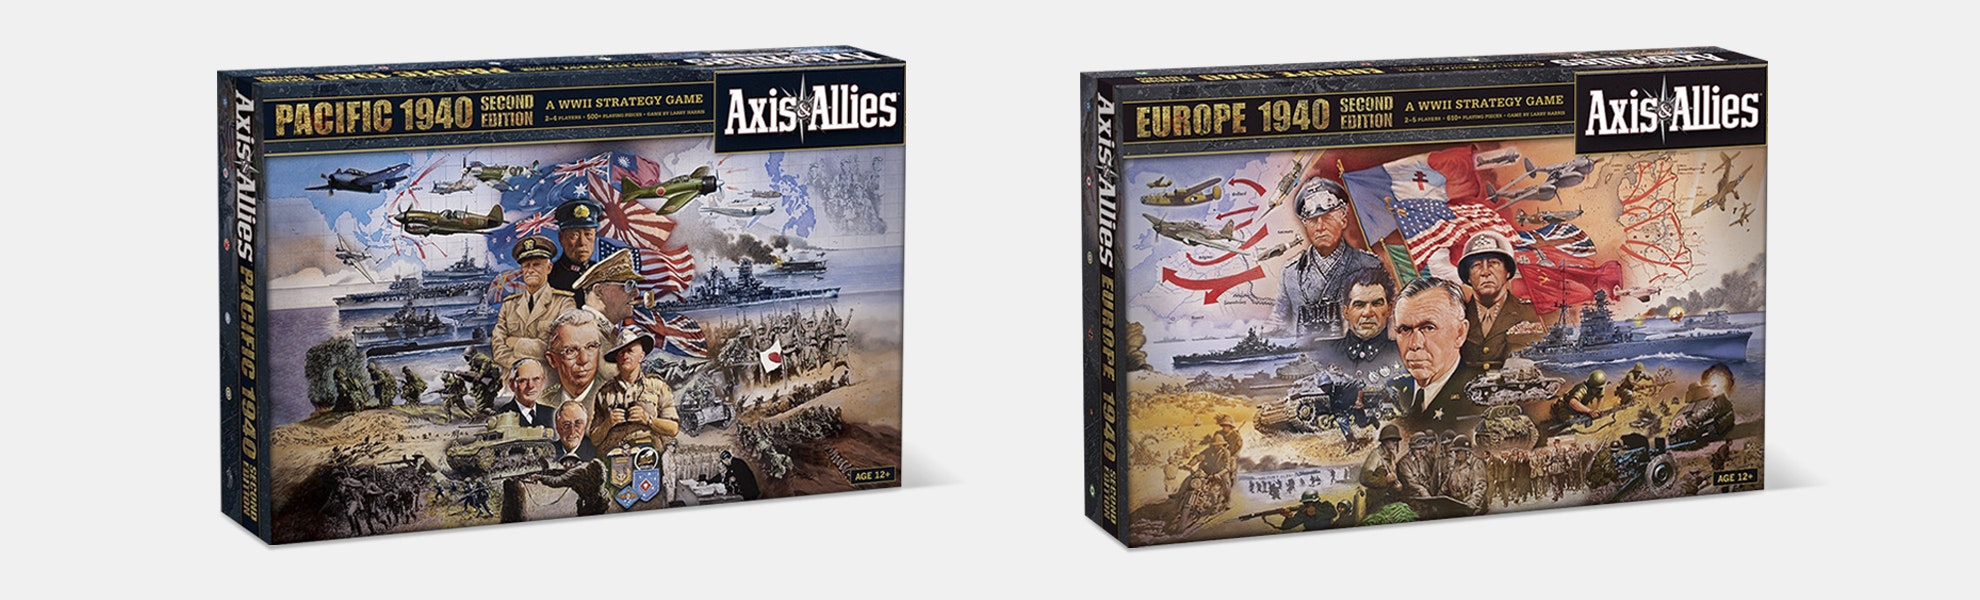 Axis & Allies 1940 Bundle